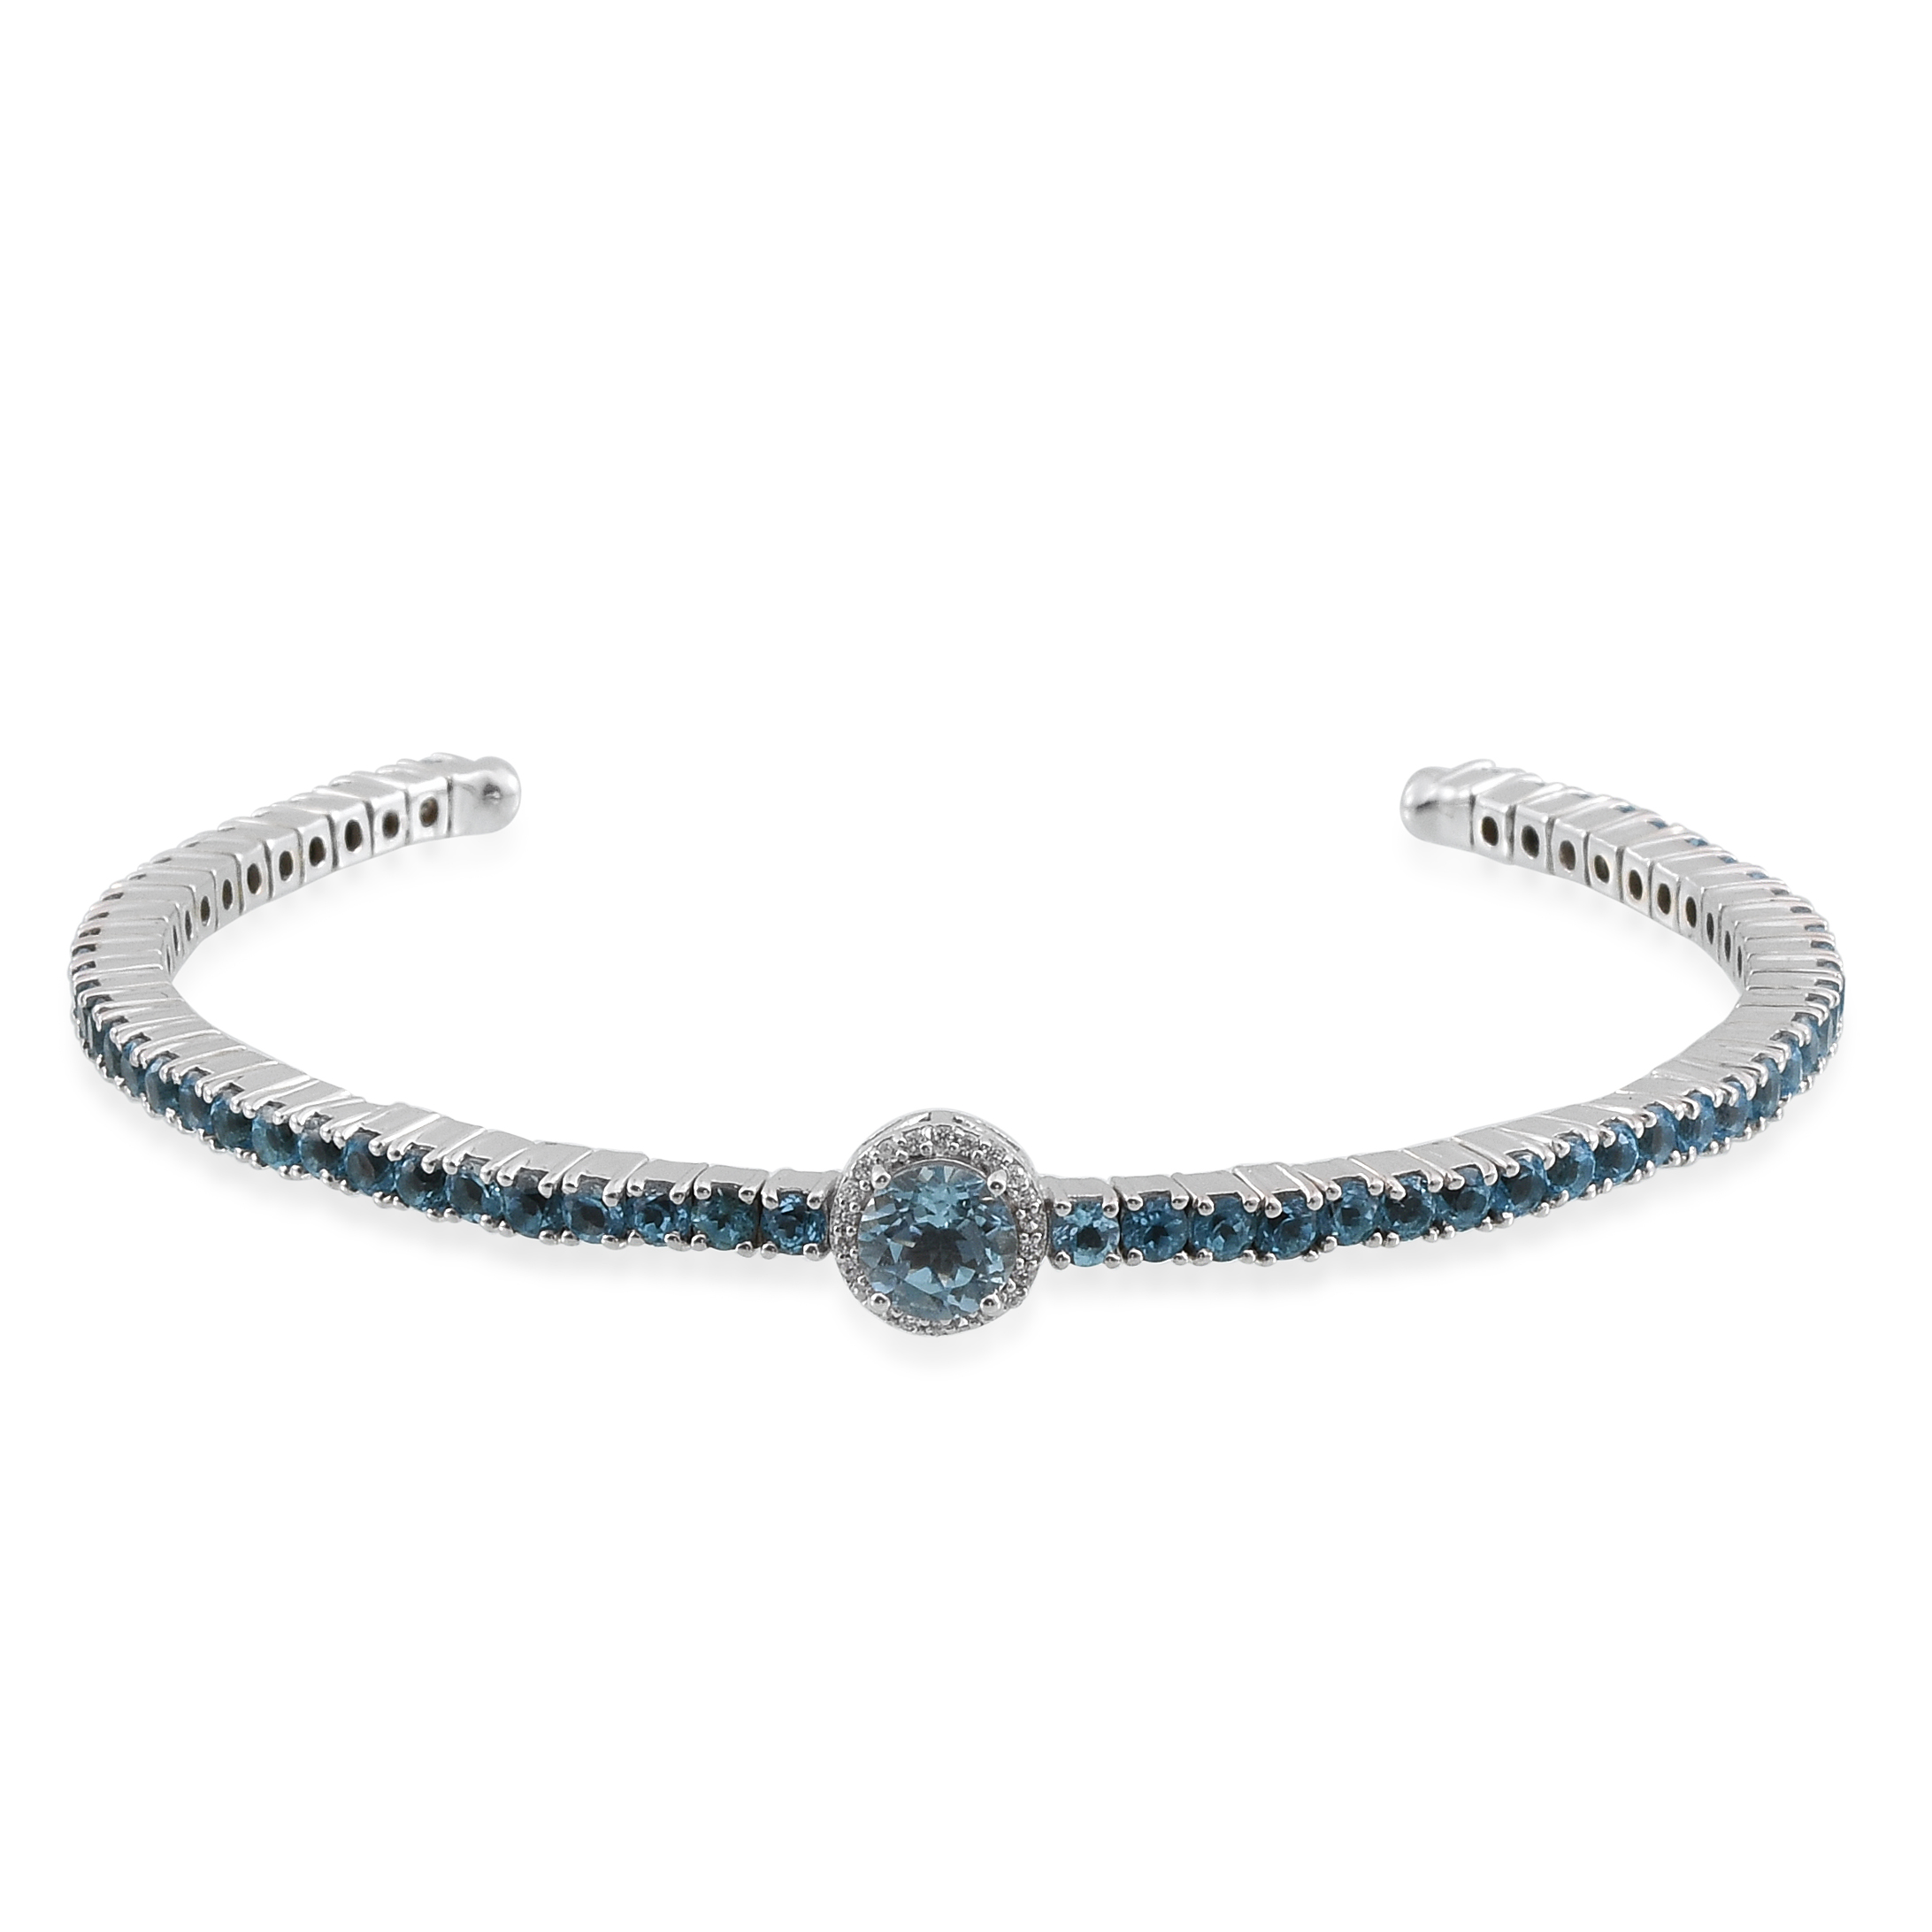 51a06ceaca6 Details about Cuff Bangle Bracelet Silver Sky Blue Topaz Gift for Women  Size 7.25